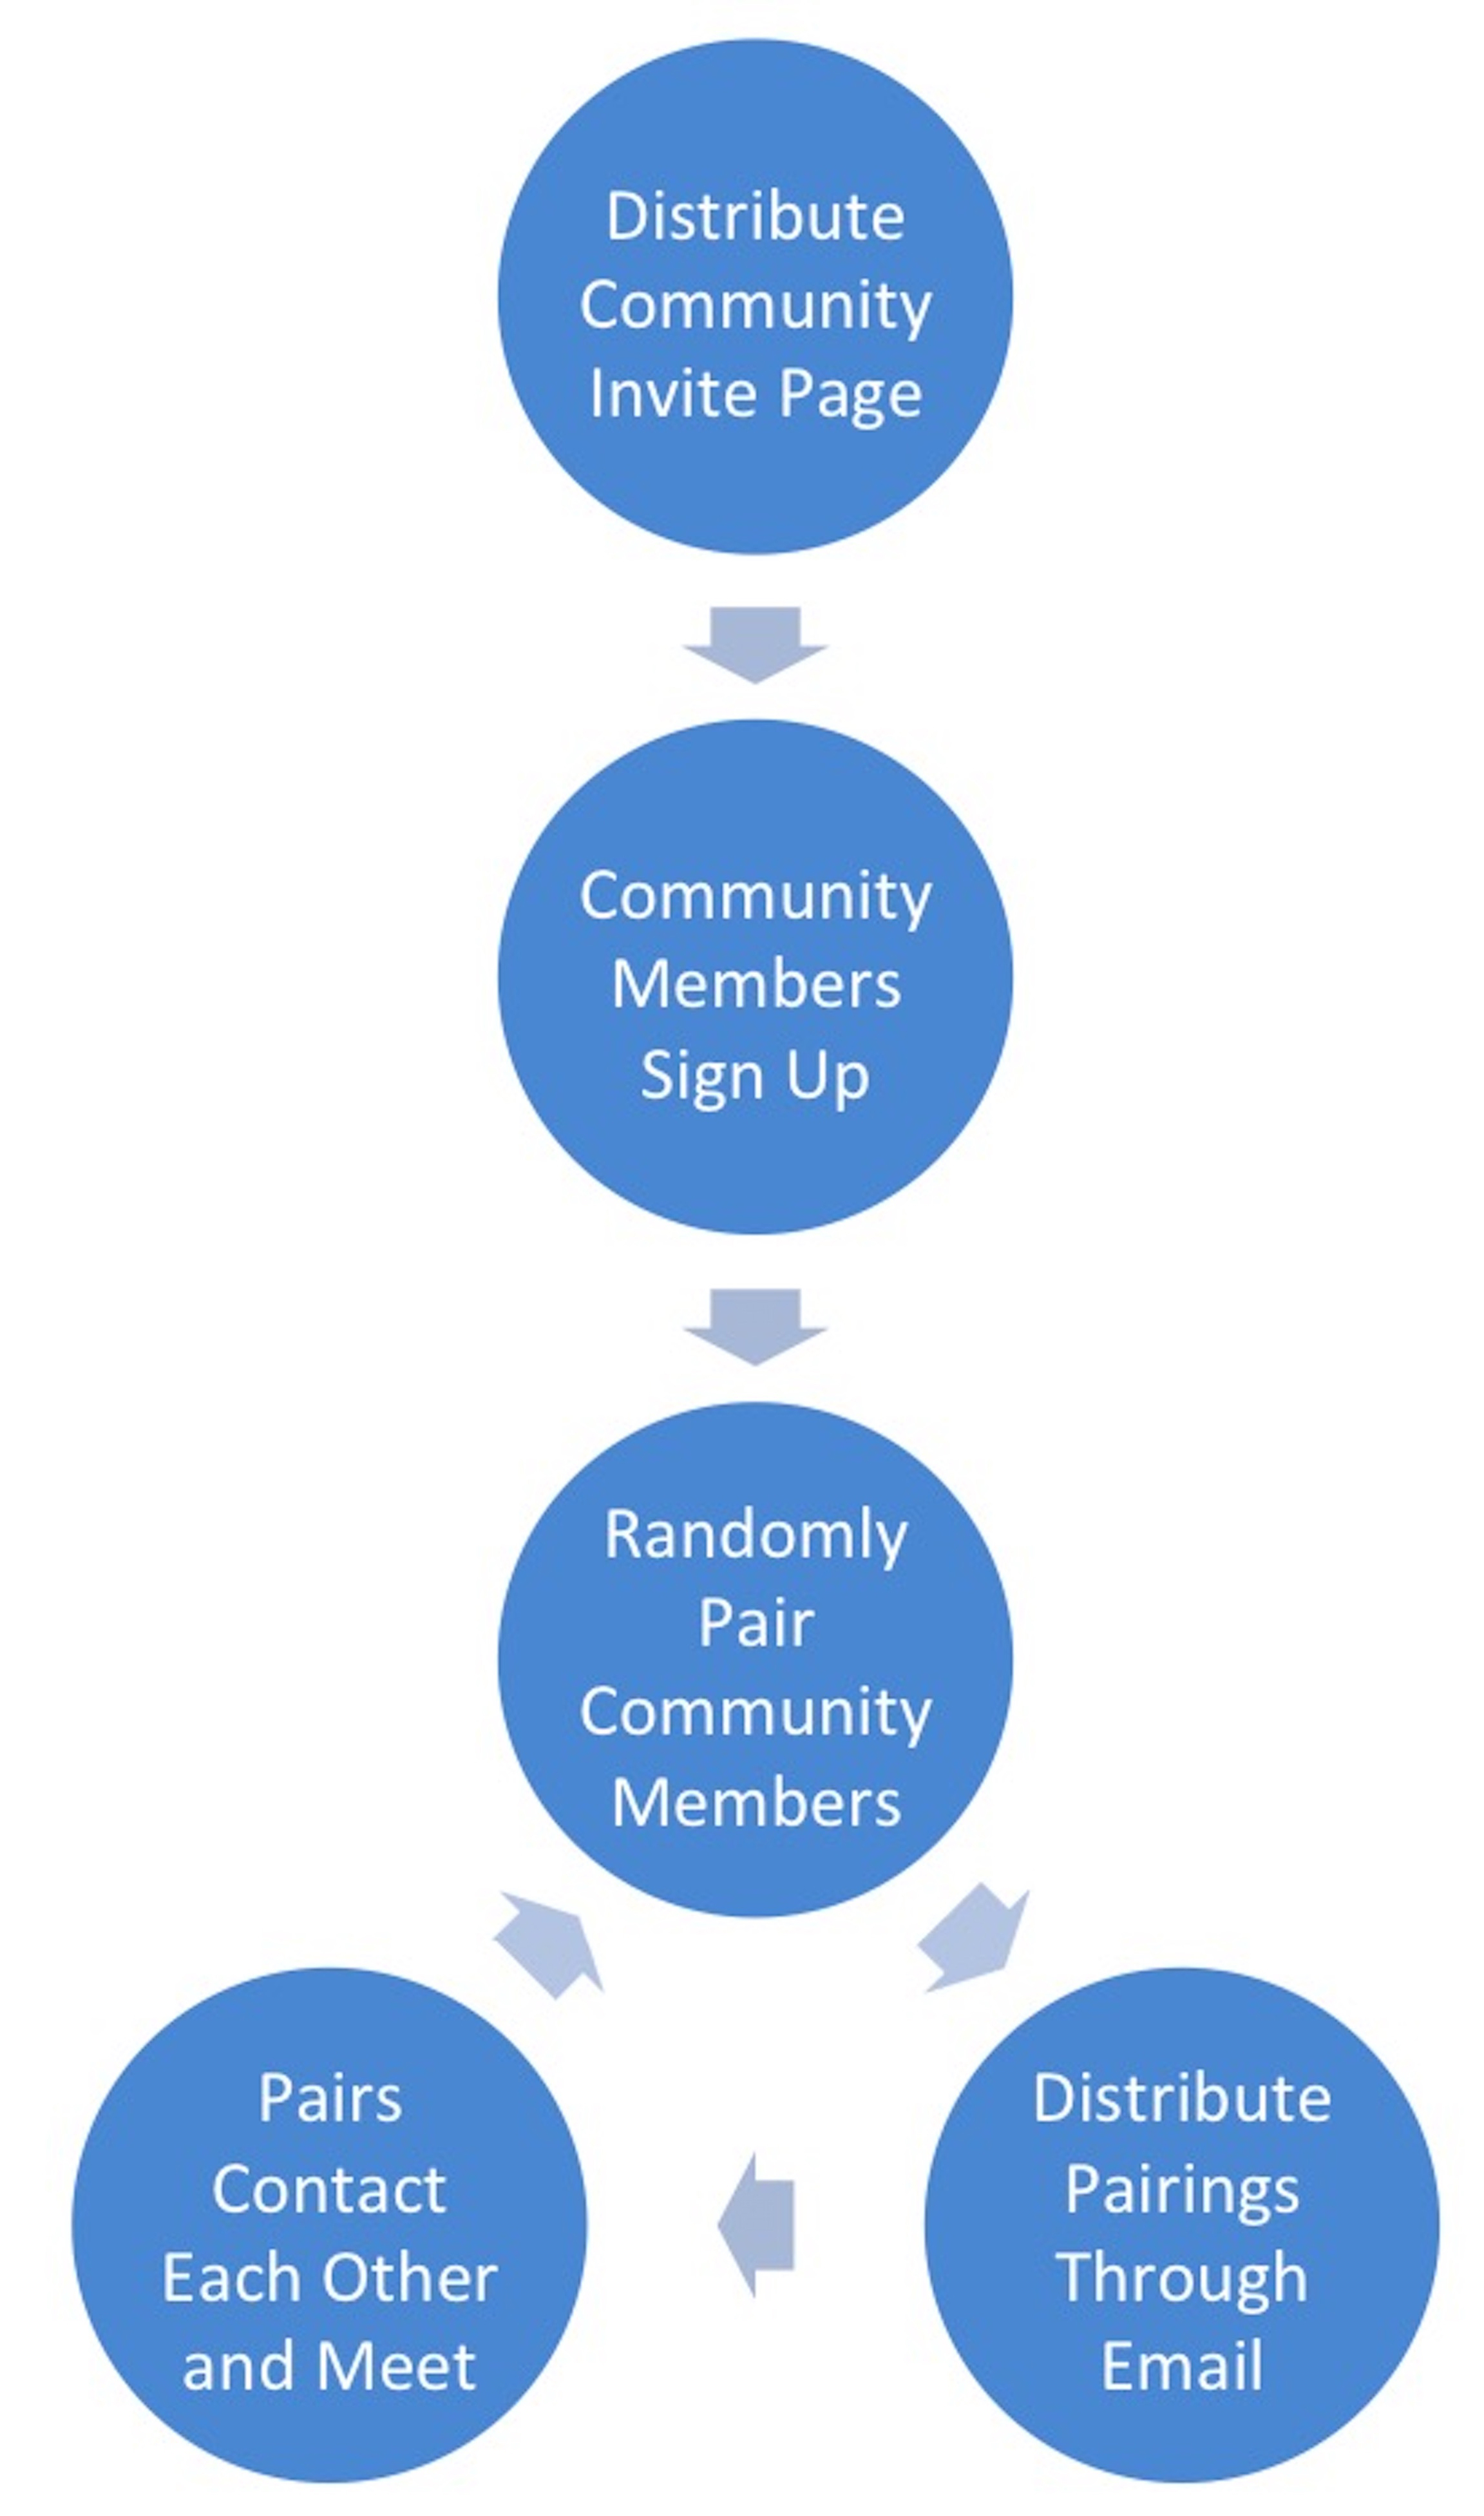 Figure 1.: Flowchart describing the process behind the SmallWorld app. First, a community administrator creates a personalized invite page and sends this page to community members. Next, members use the page to learn about SmallWorld and sign up with their name and e-mail address. SmallWorld then randomly pairs community members. These pairings are distributed through e-mail. After being paired, community members contact each other and set up a meeting over lunch, coffee, or another one-on-one interaction. These steps are repeated at a regular interval determined by the community: weekly, monthly, or any other frequency.